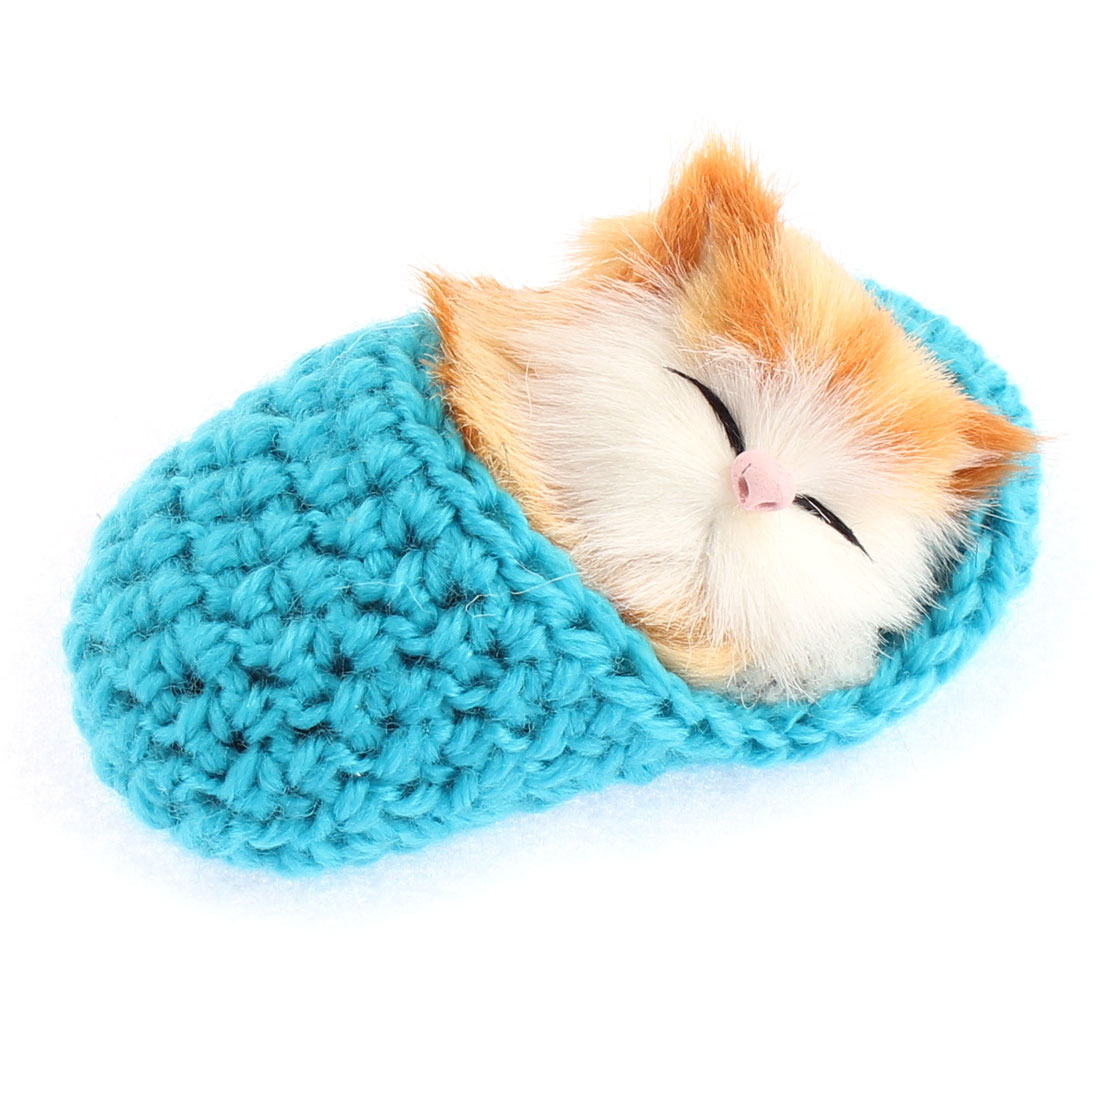 Home Decor Simulation Animal Sound Napping Sleeping Cat in Sock Blue